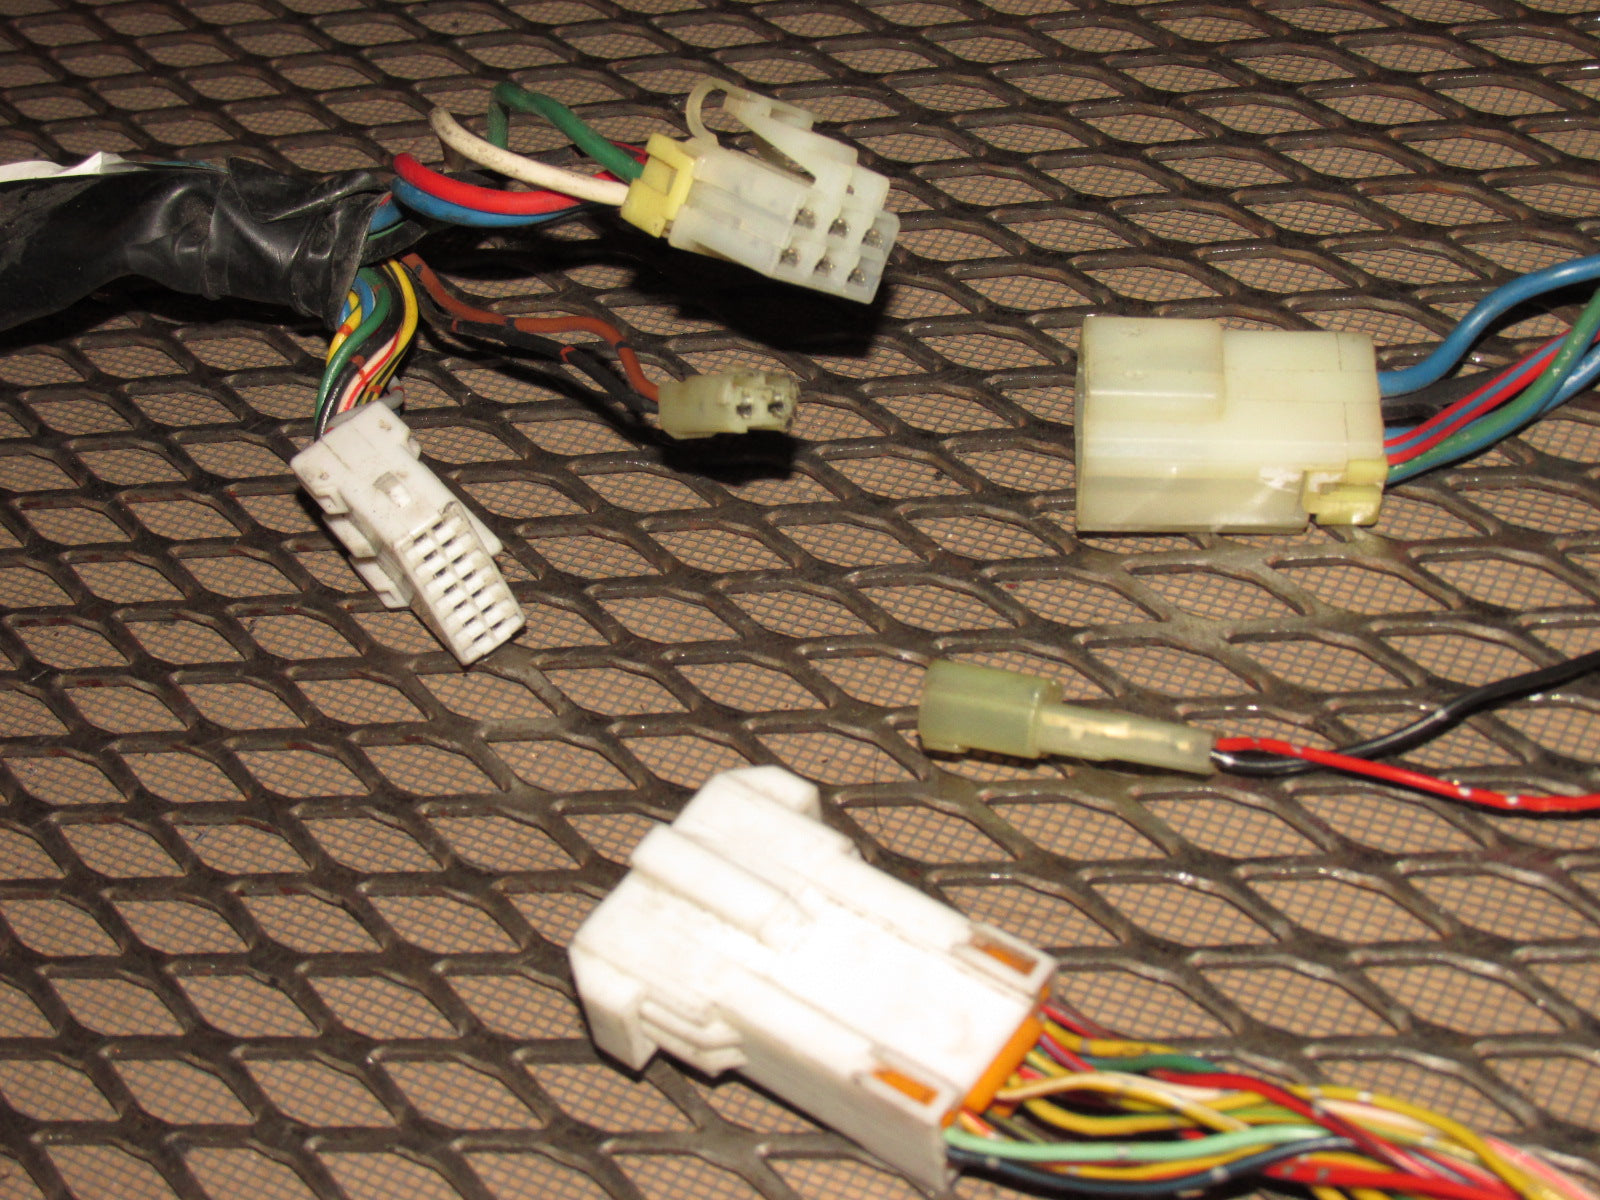 Stupendous 87 88 89 Chrysler Conquest Oem Chassis Door Wiring Harness Pigtail Wiring Digital Resources Remcakbiperorg